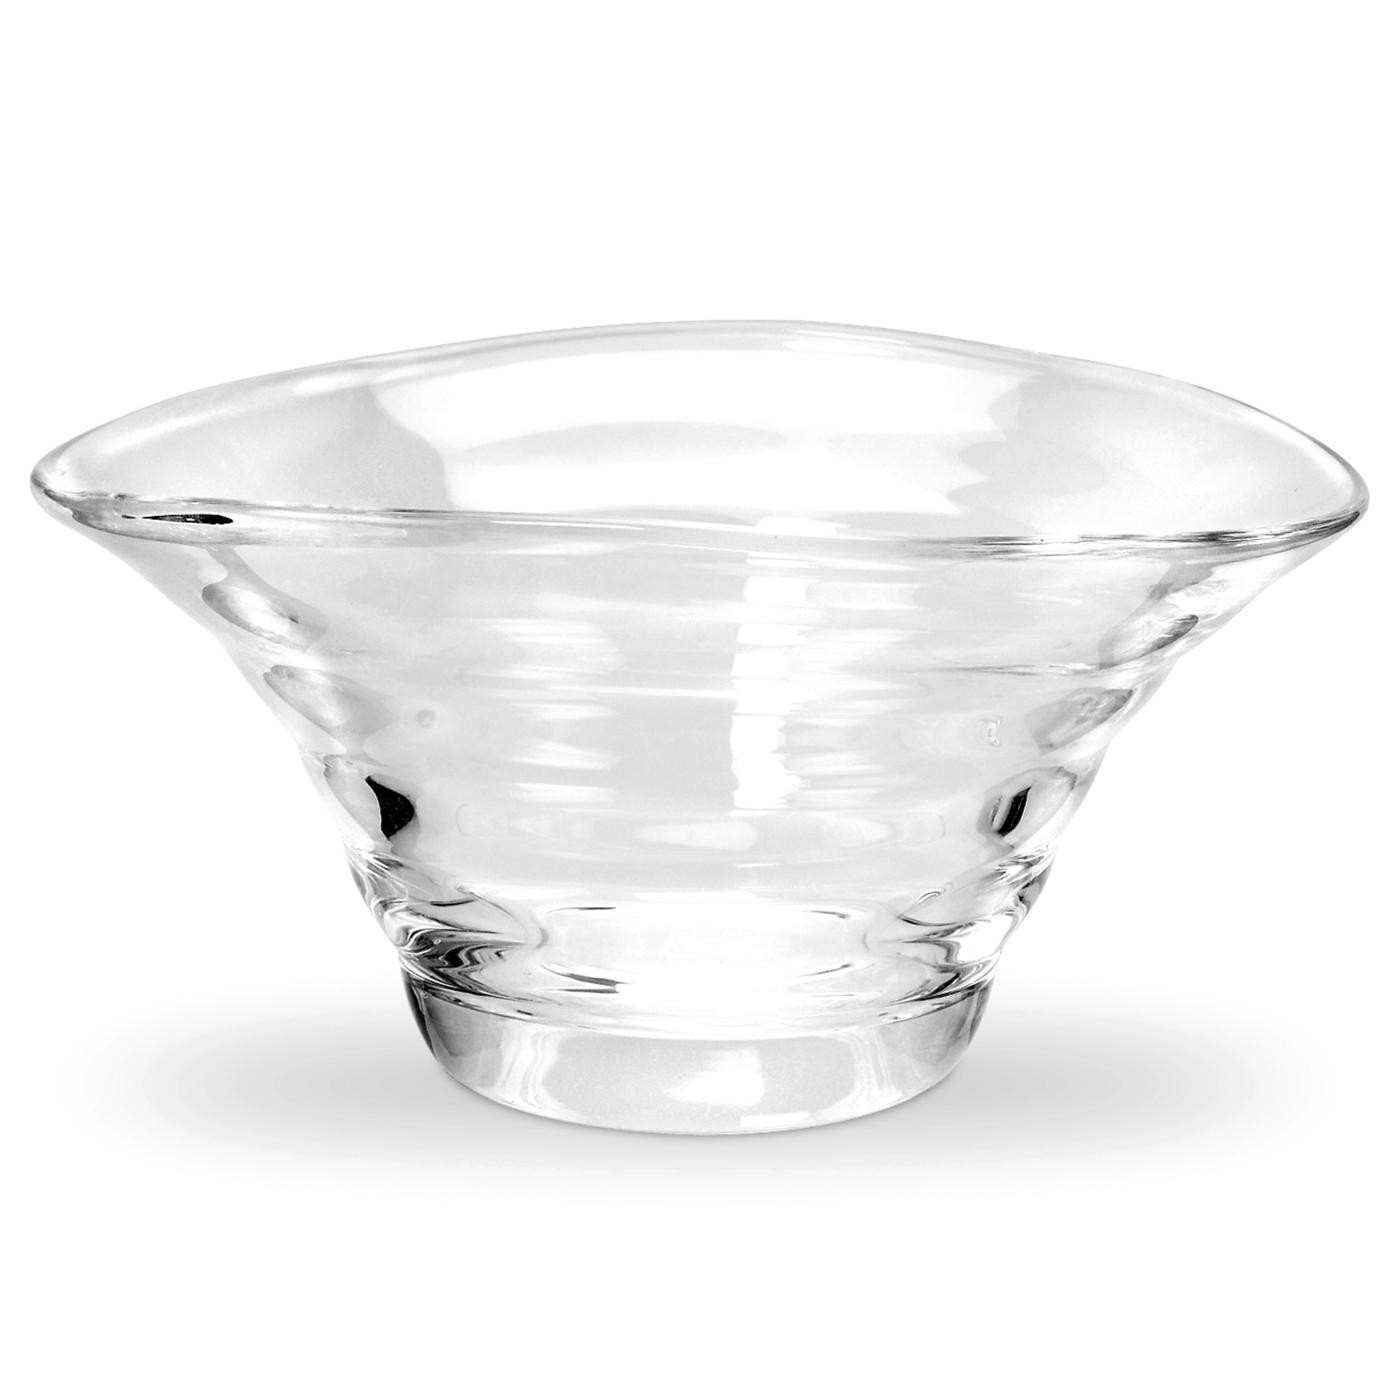 "Sophie Conran 10.5"" Medium Glass Centerpiece Bowl"